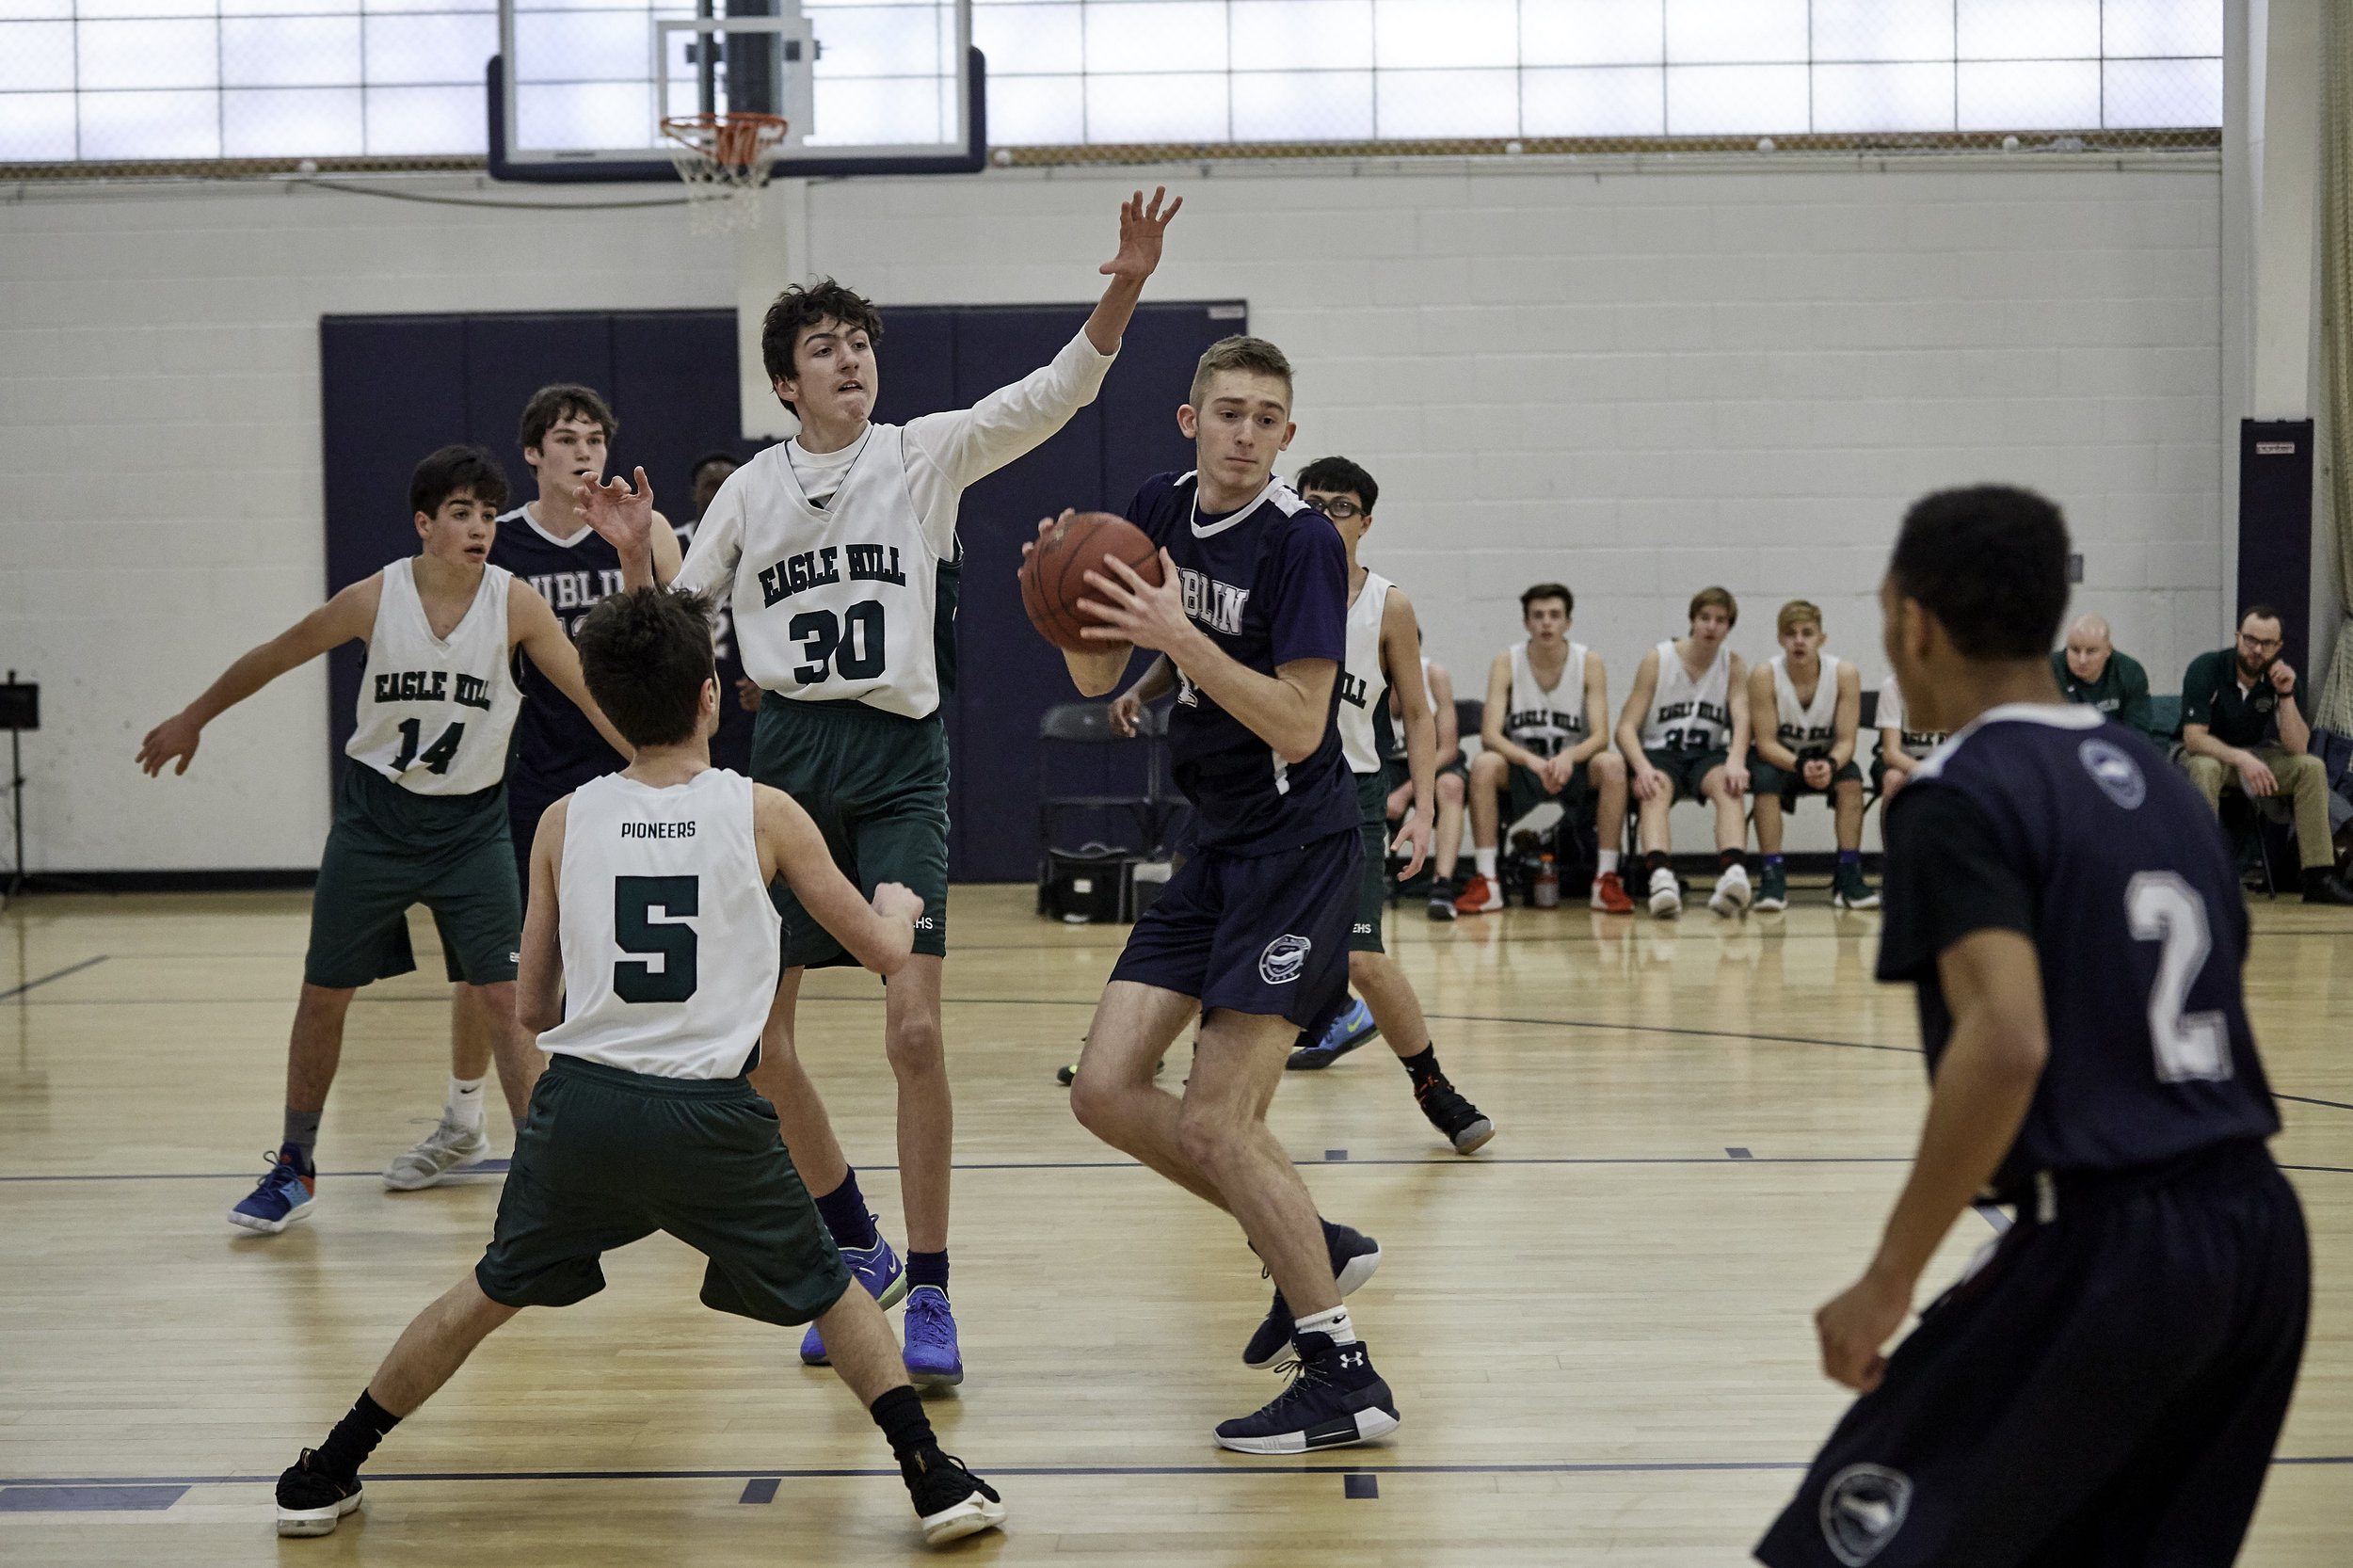 Boys Varsity Basketball vs. Eagle Hill School JV at RVAL Tournament - February 11, 2019 - 167896.jpg